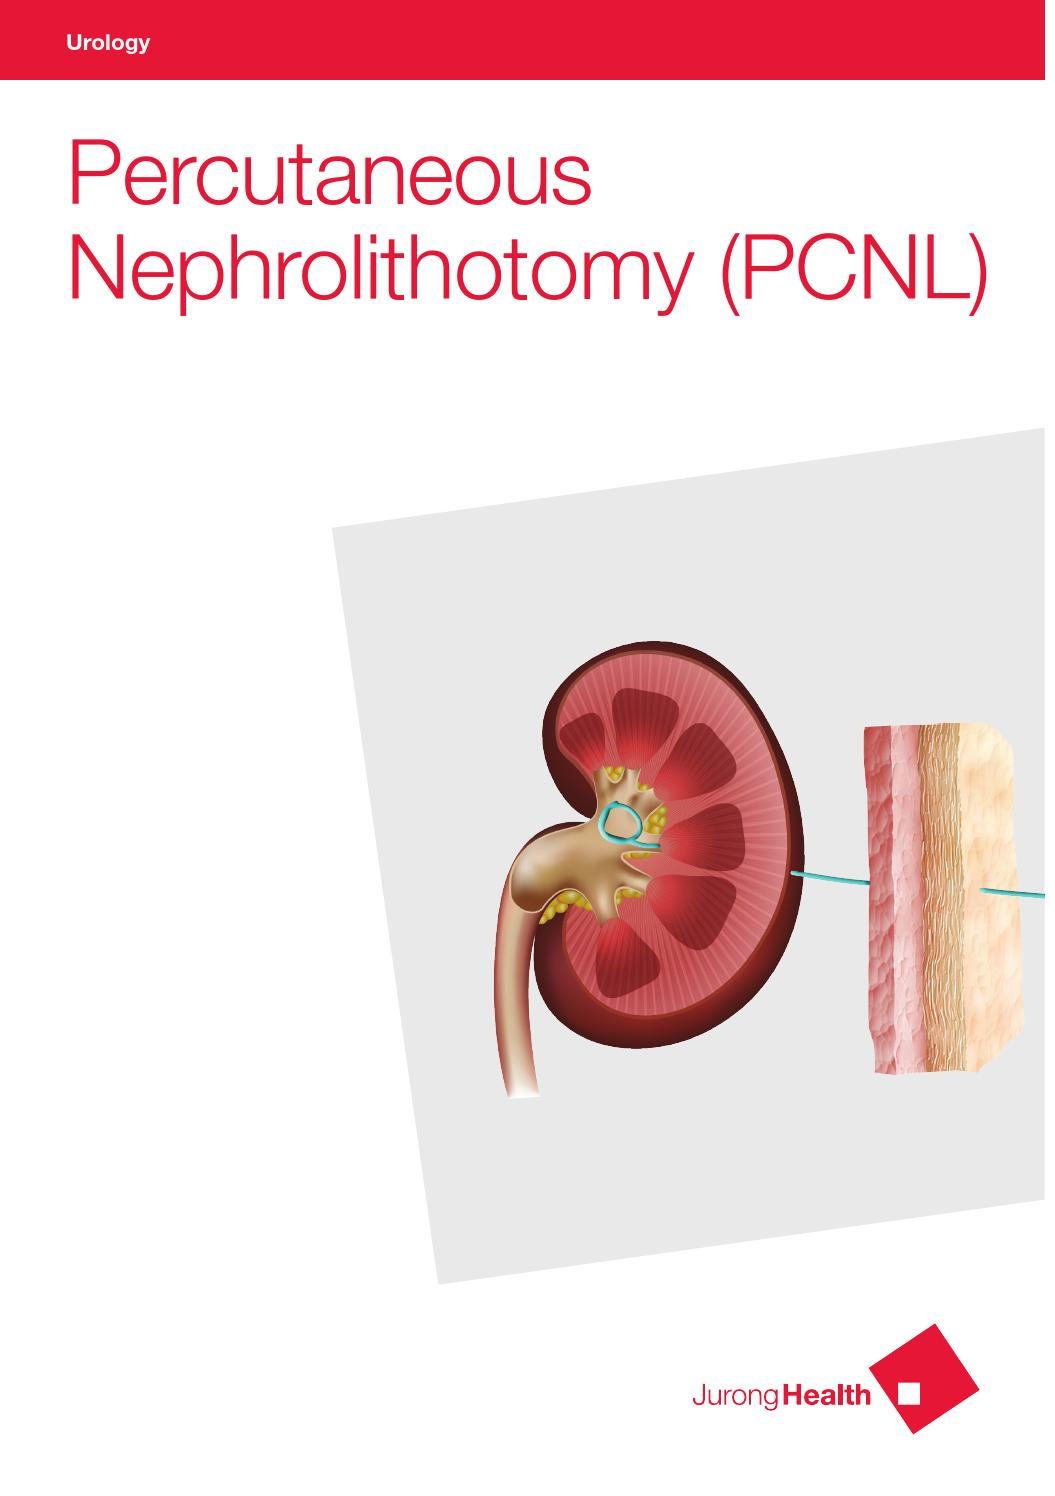 Percutaneous Nephrolithotomy Update Trends and Future